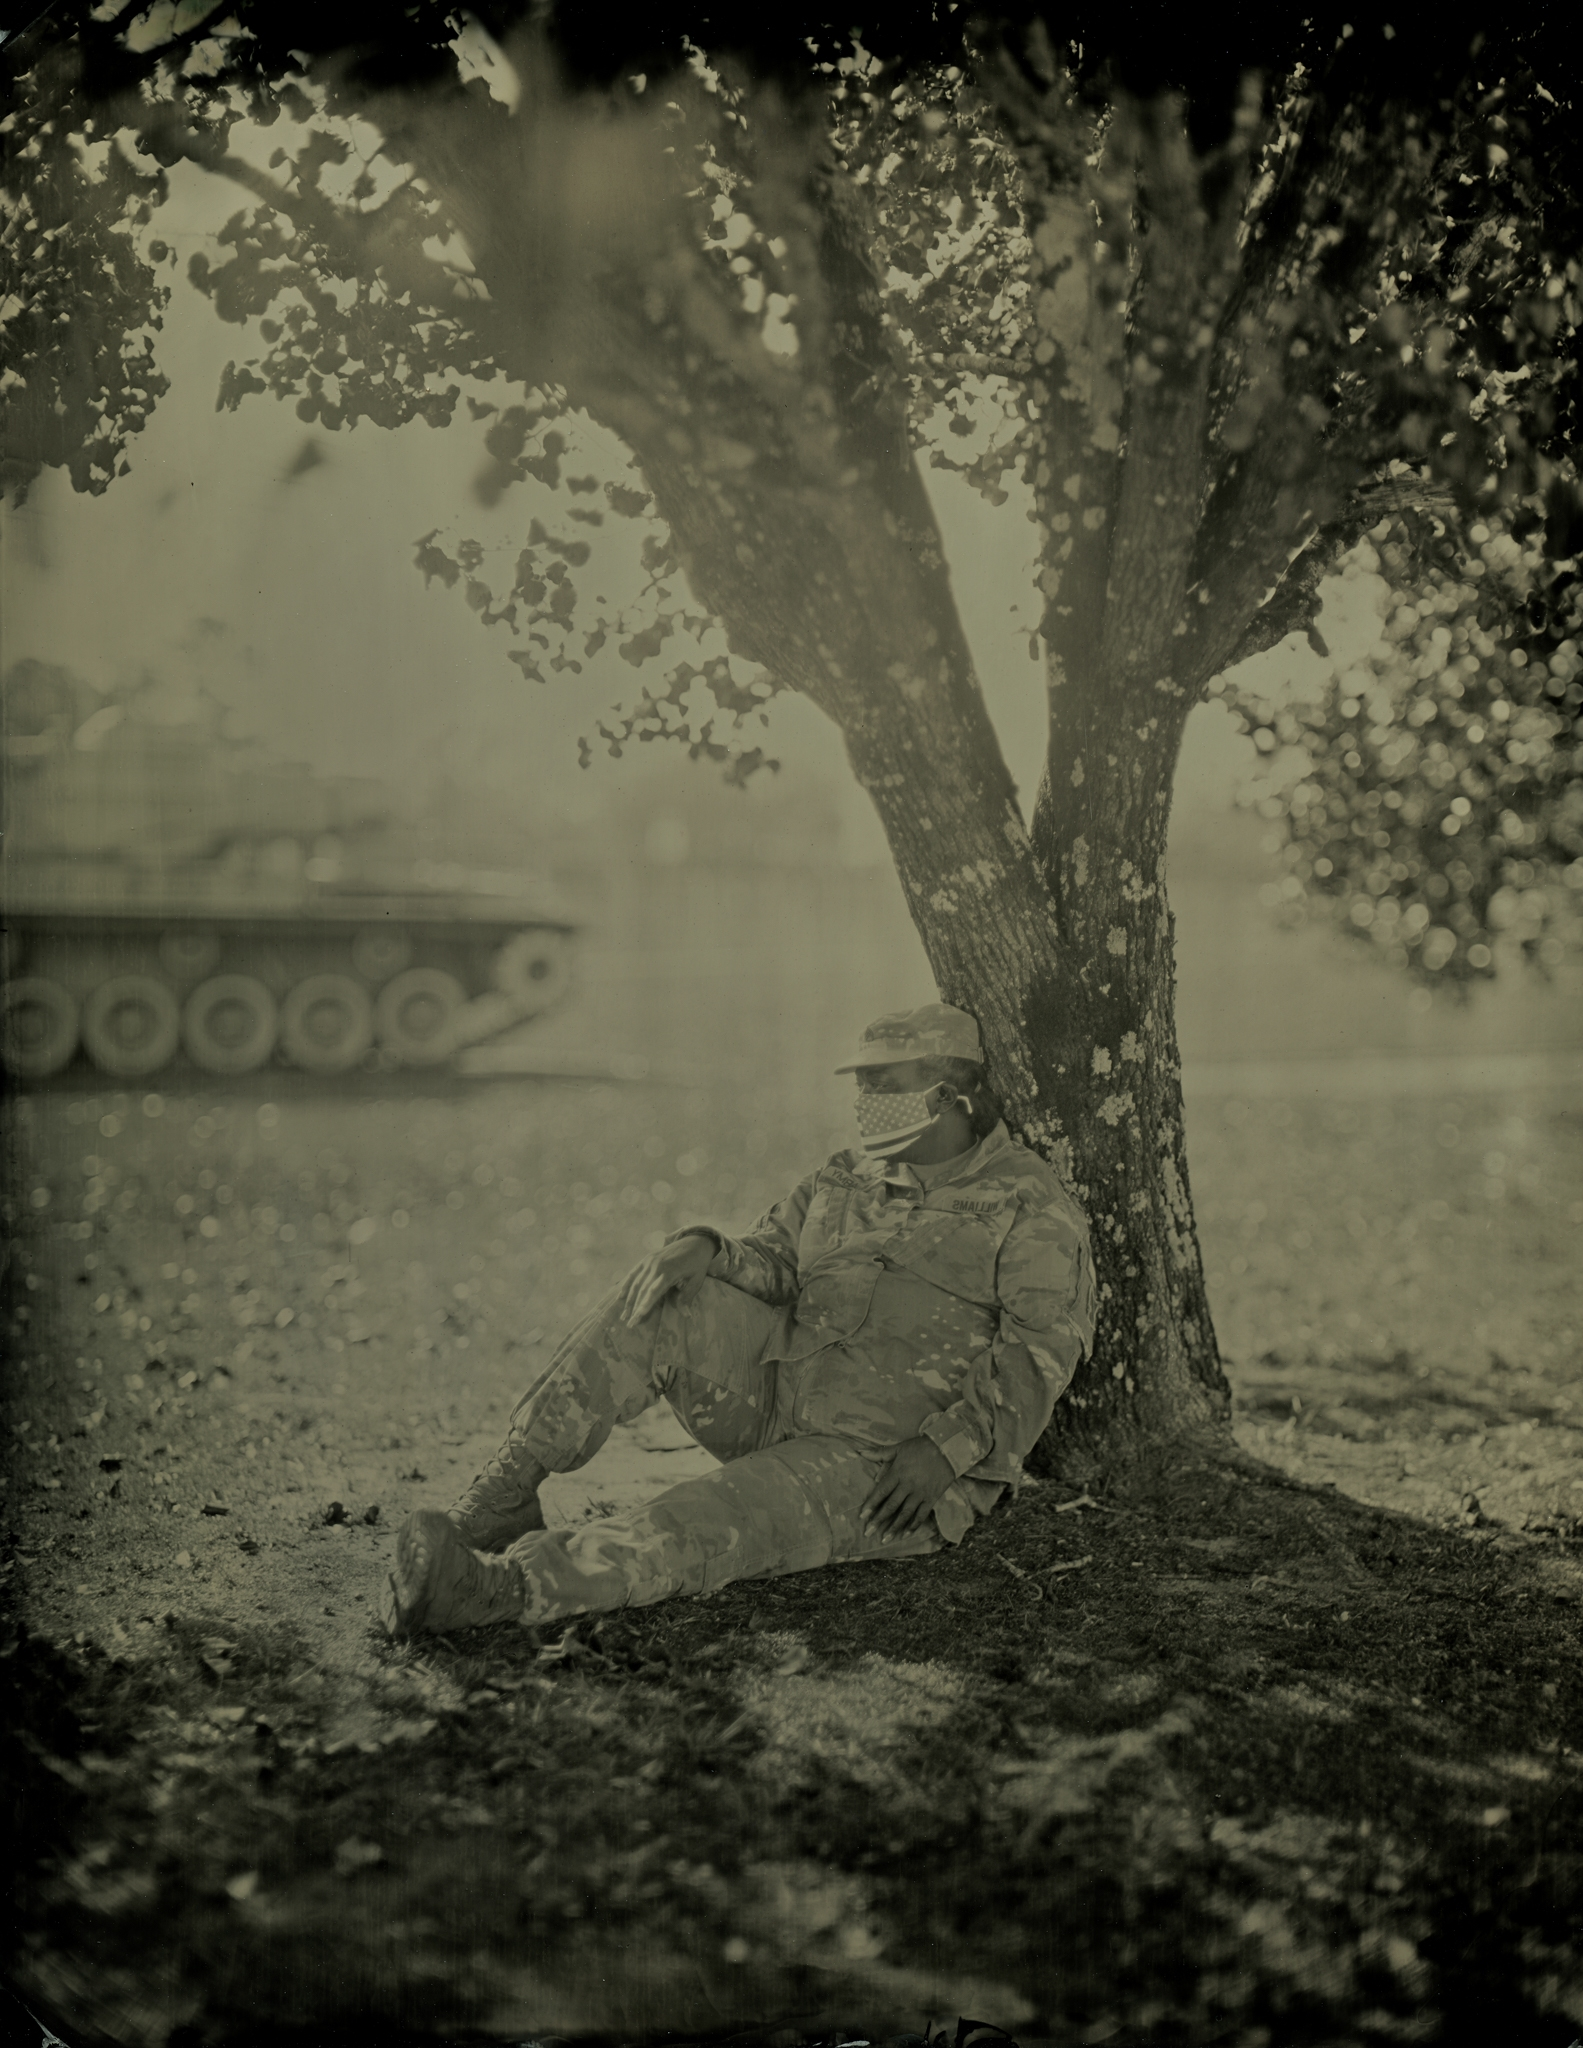 Staff Sgt. Vanessa Lewis Williams sits under a tree for a tintype portrait at the Georgia Army National Guard Readiness Center in Macon, Georgia.